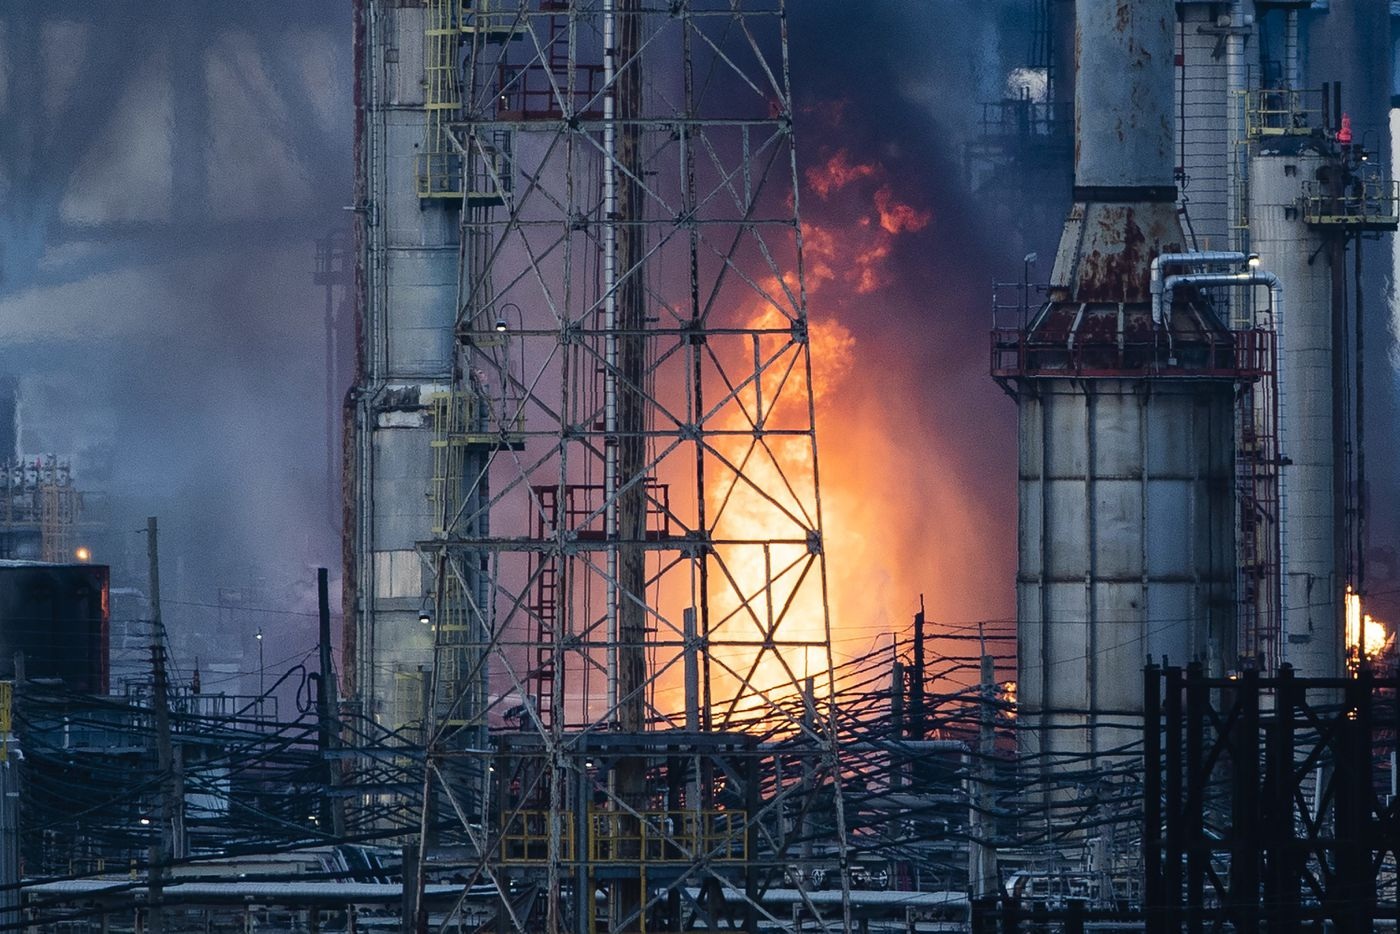 Flames and smoke emerge from the Philadelphia Energy Solutions Refining Complex in Philadelphia, Friday, June 21, 2019.